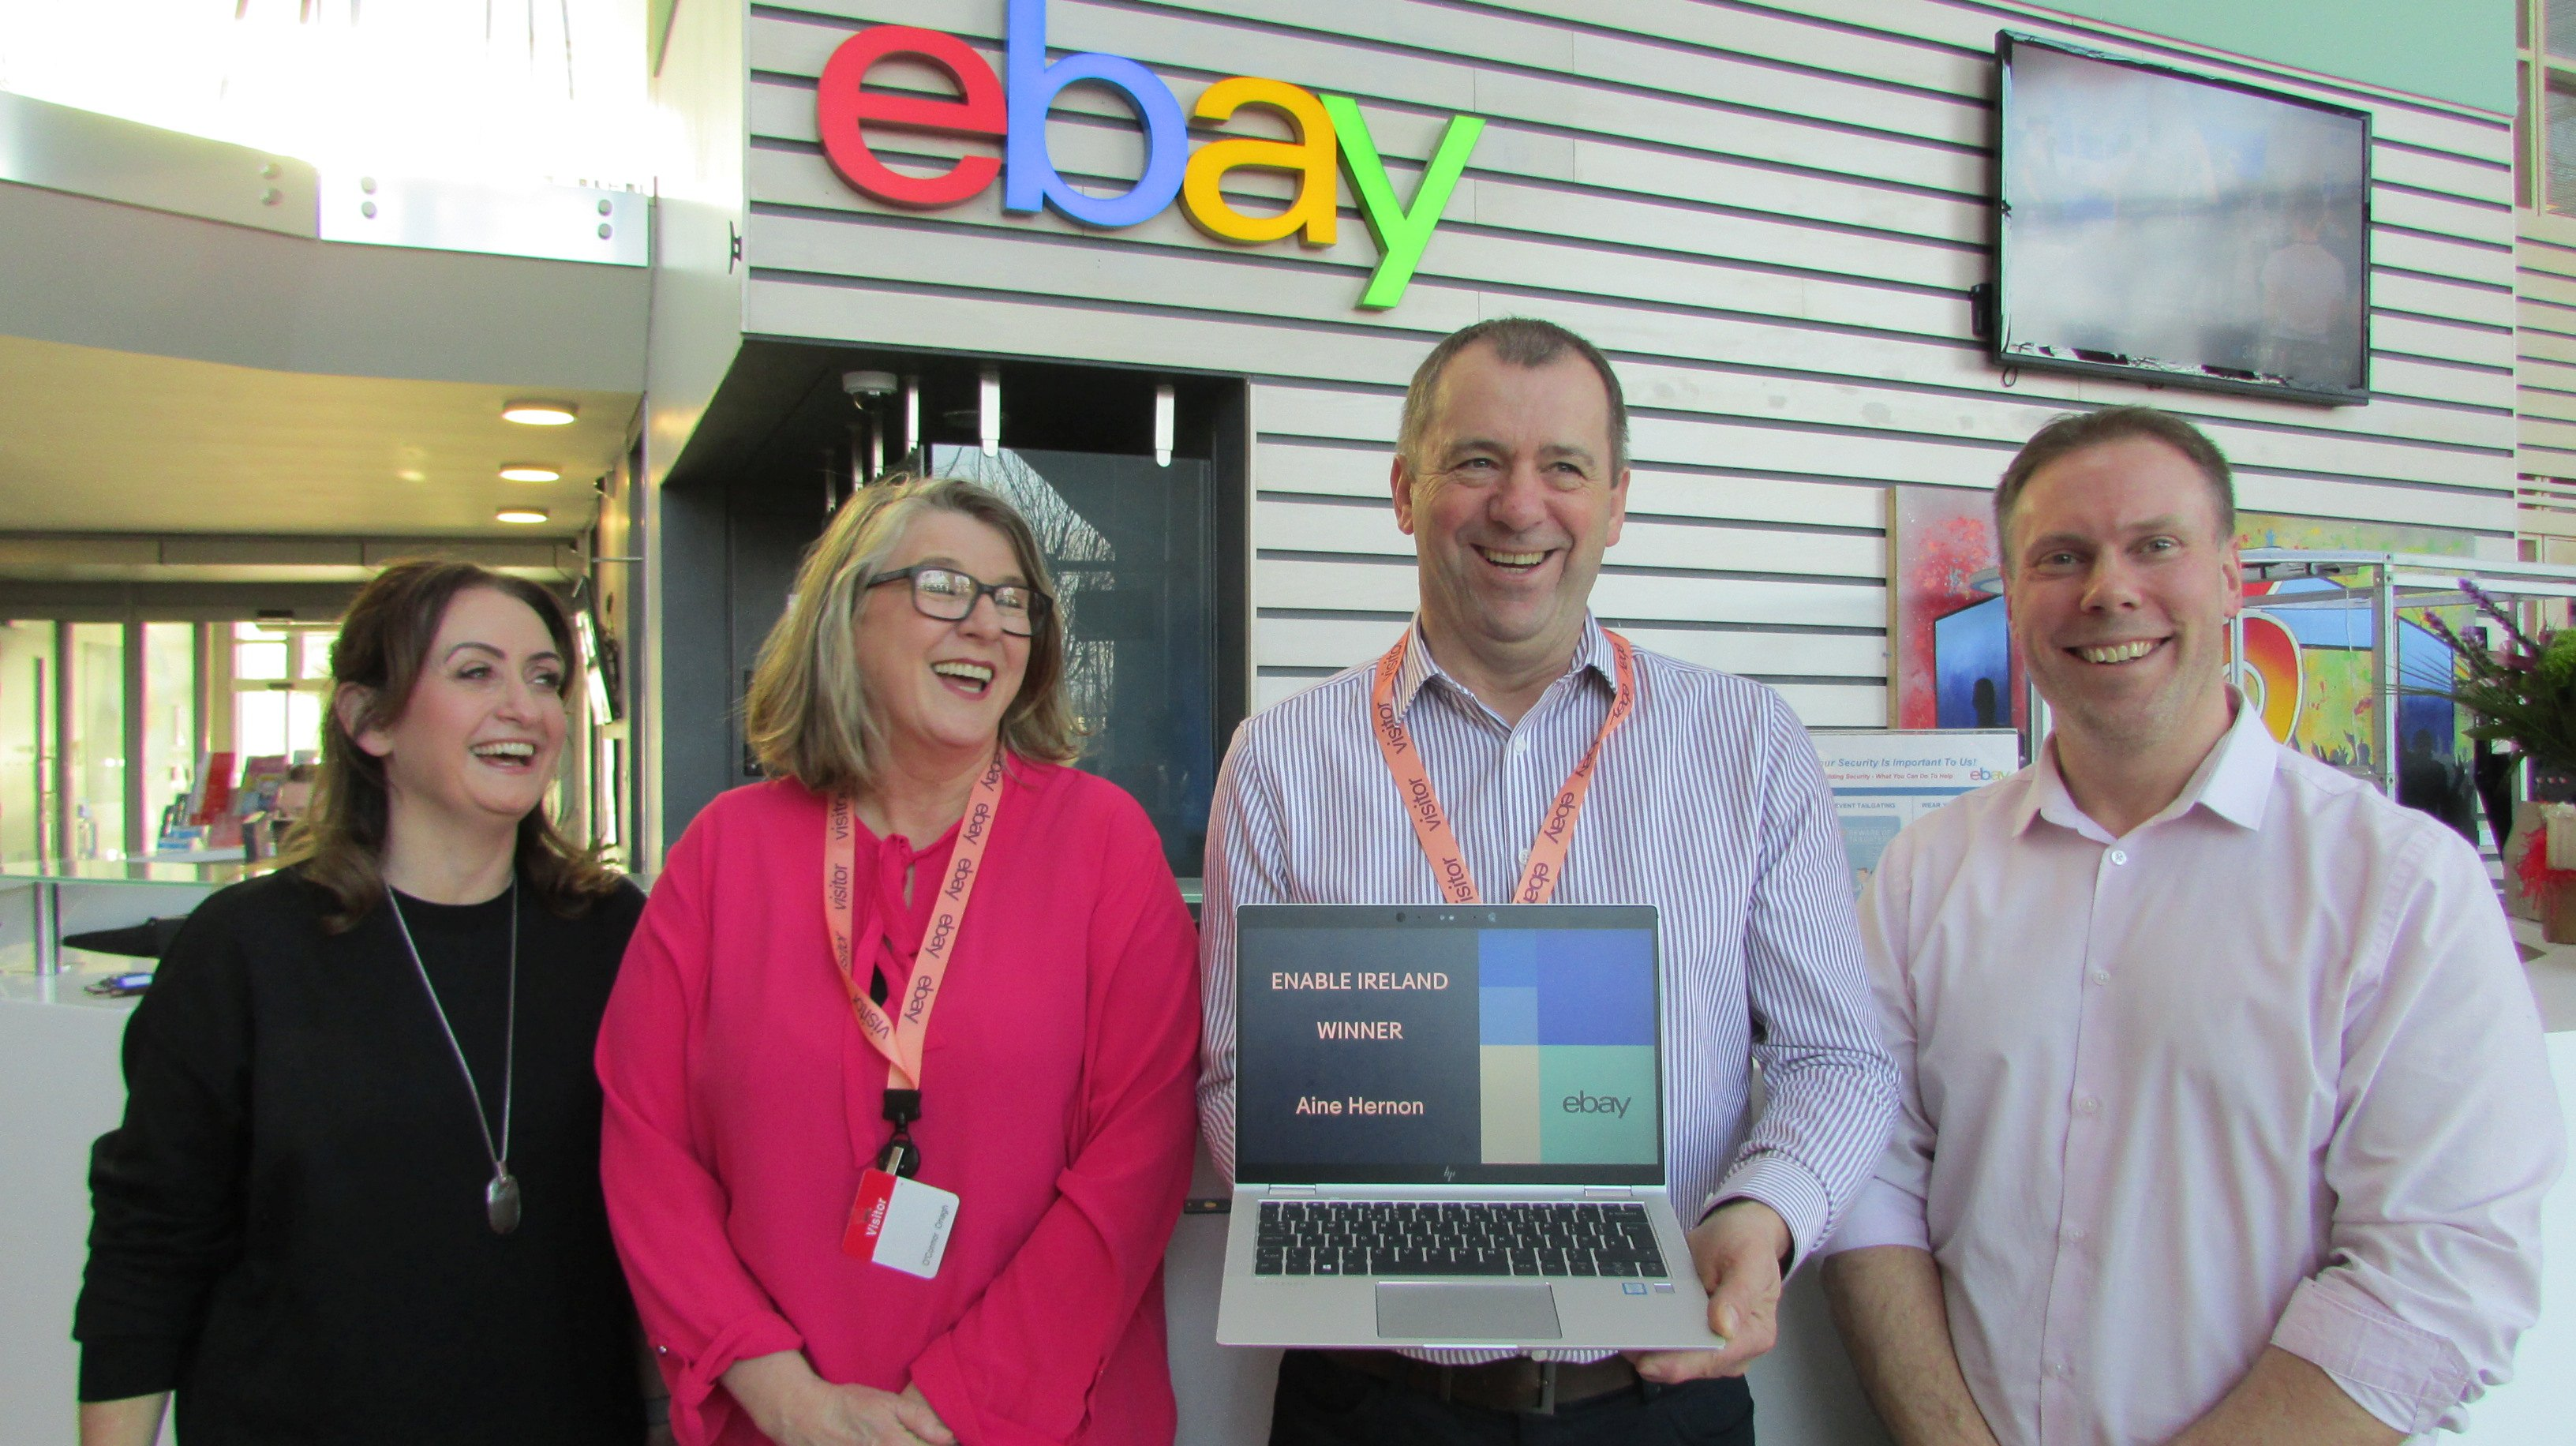 Four people from Enable Ireland and eBay announce the winner of the charity raffle